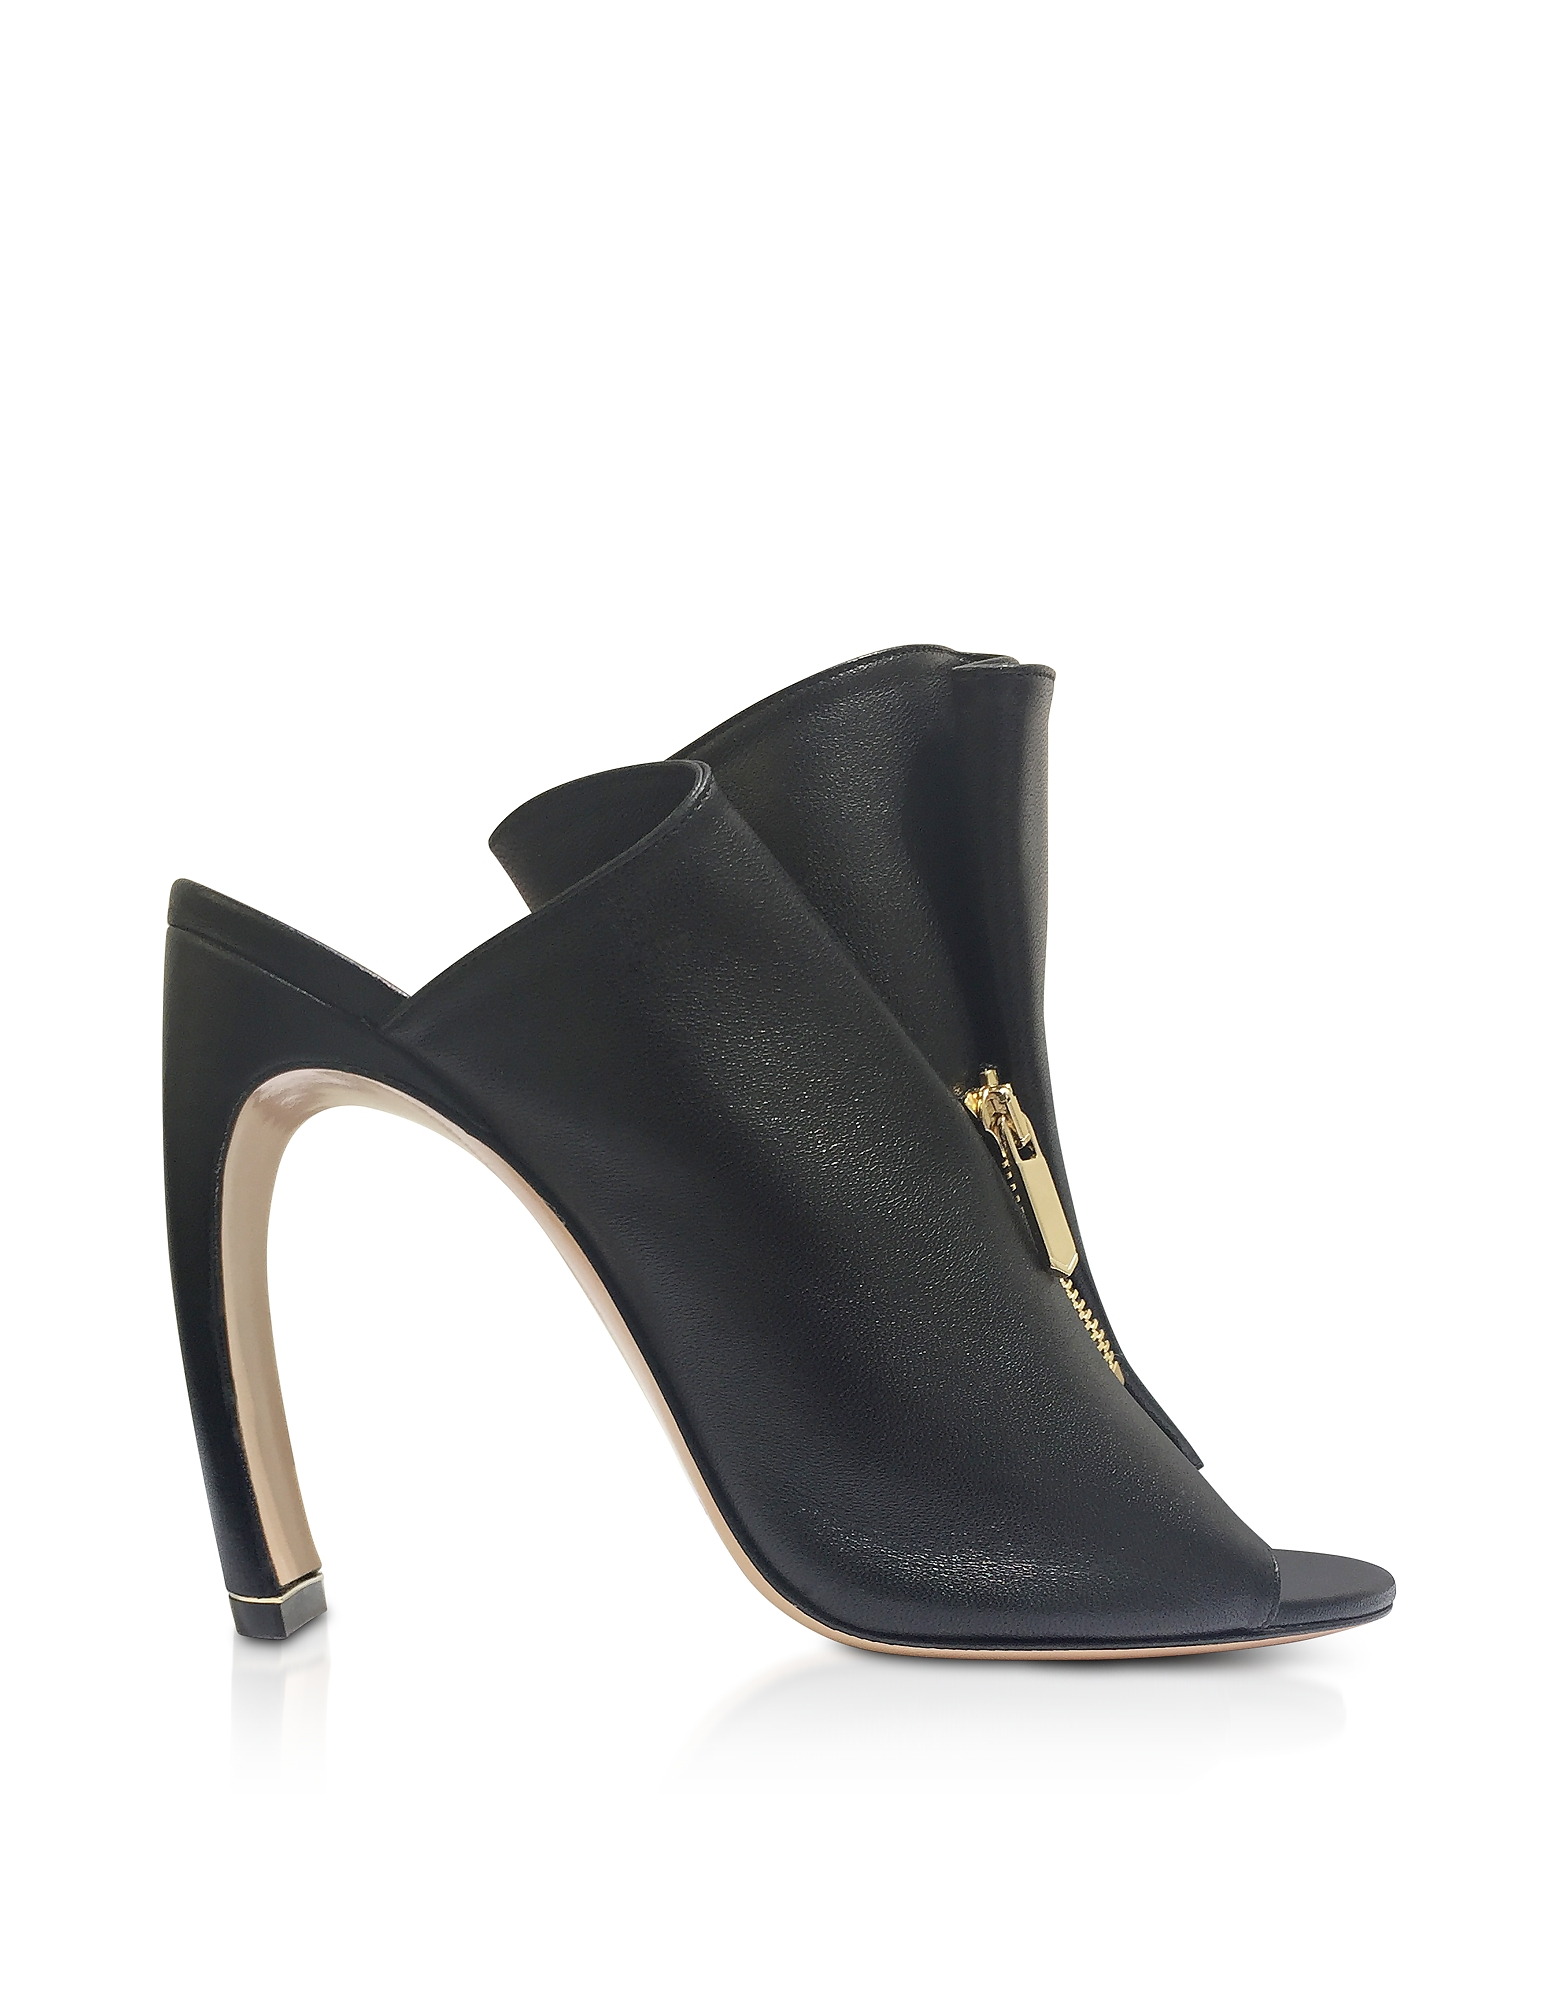 Nicholas Kirkwood Designer Shoes, Black Nappa 105mm Kristen High Heel Mules